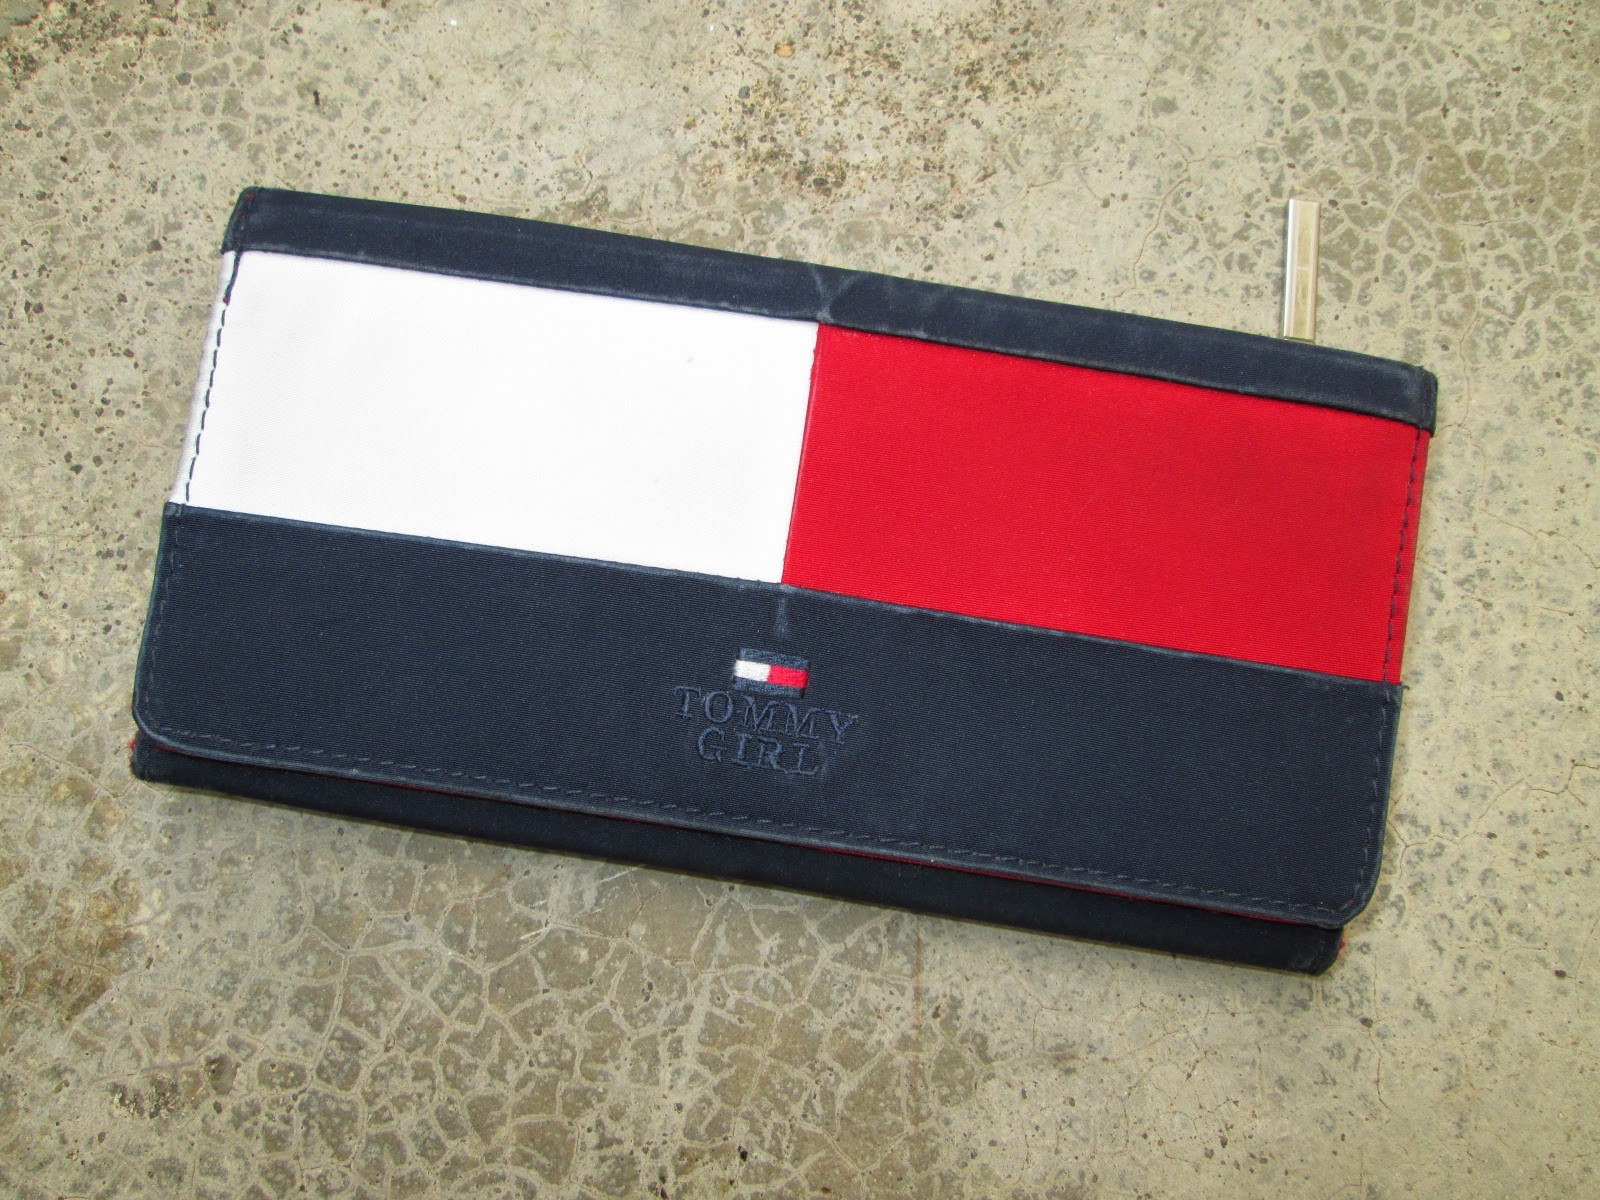 ac2fc73446 d0rayakEEbaG: Authentic Tommy Hilfiger Girl Long Wallet(SOLD)